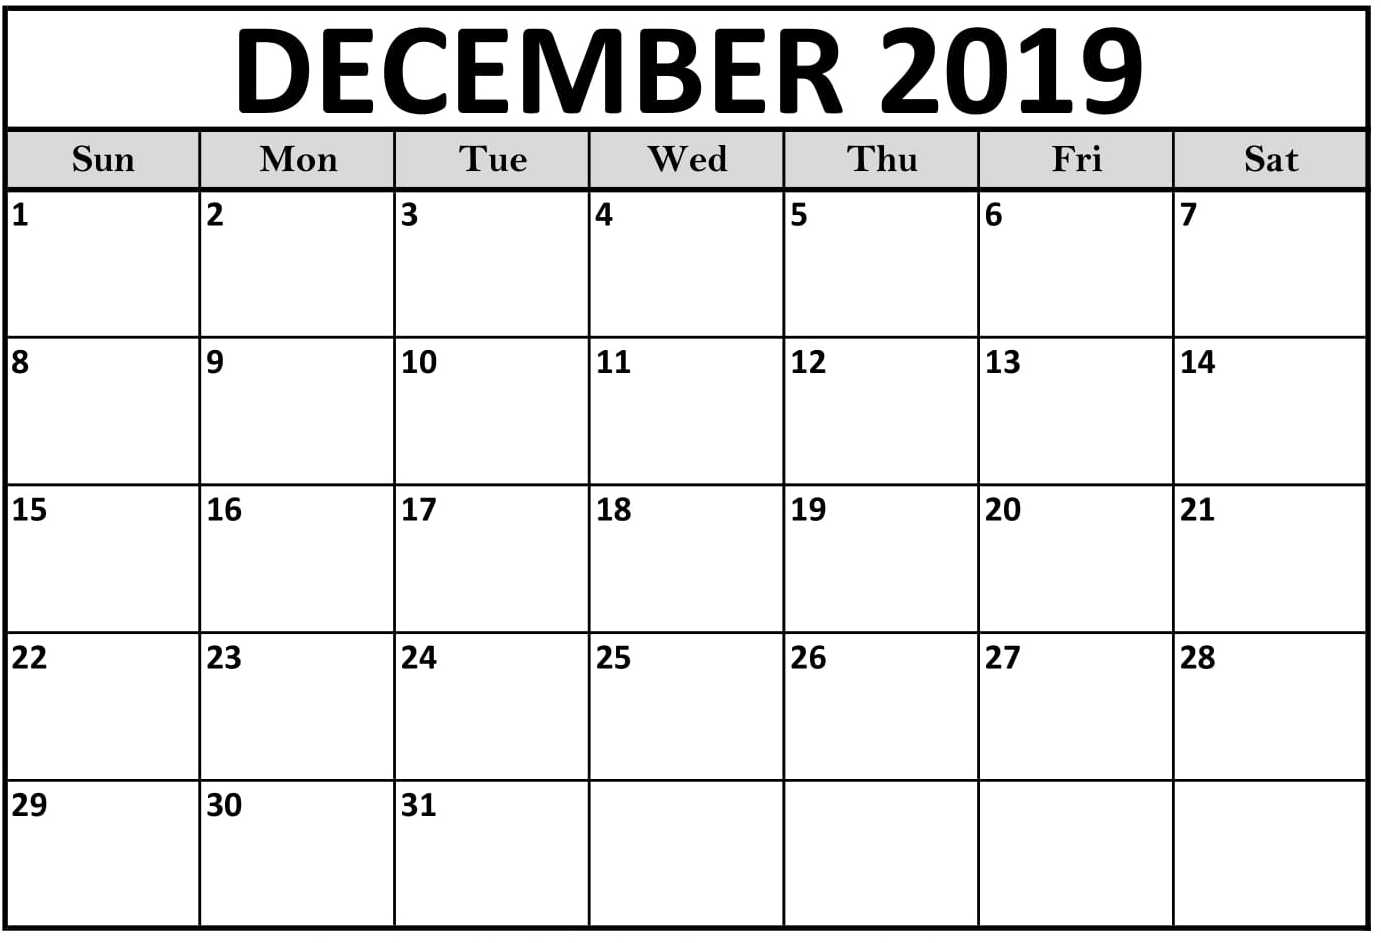 December 2019 Calendar With Holiday